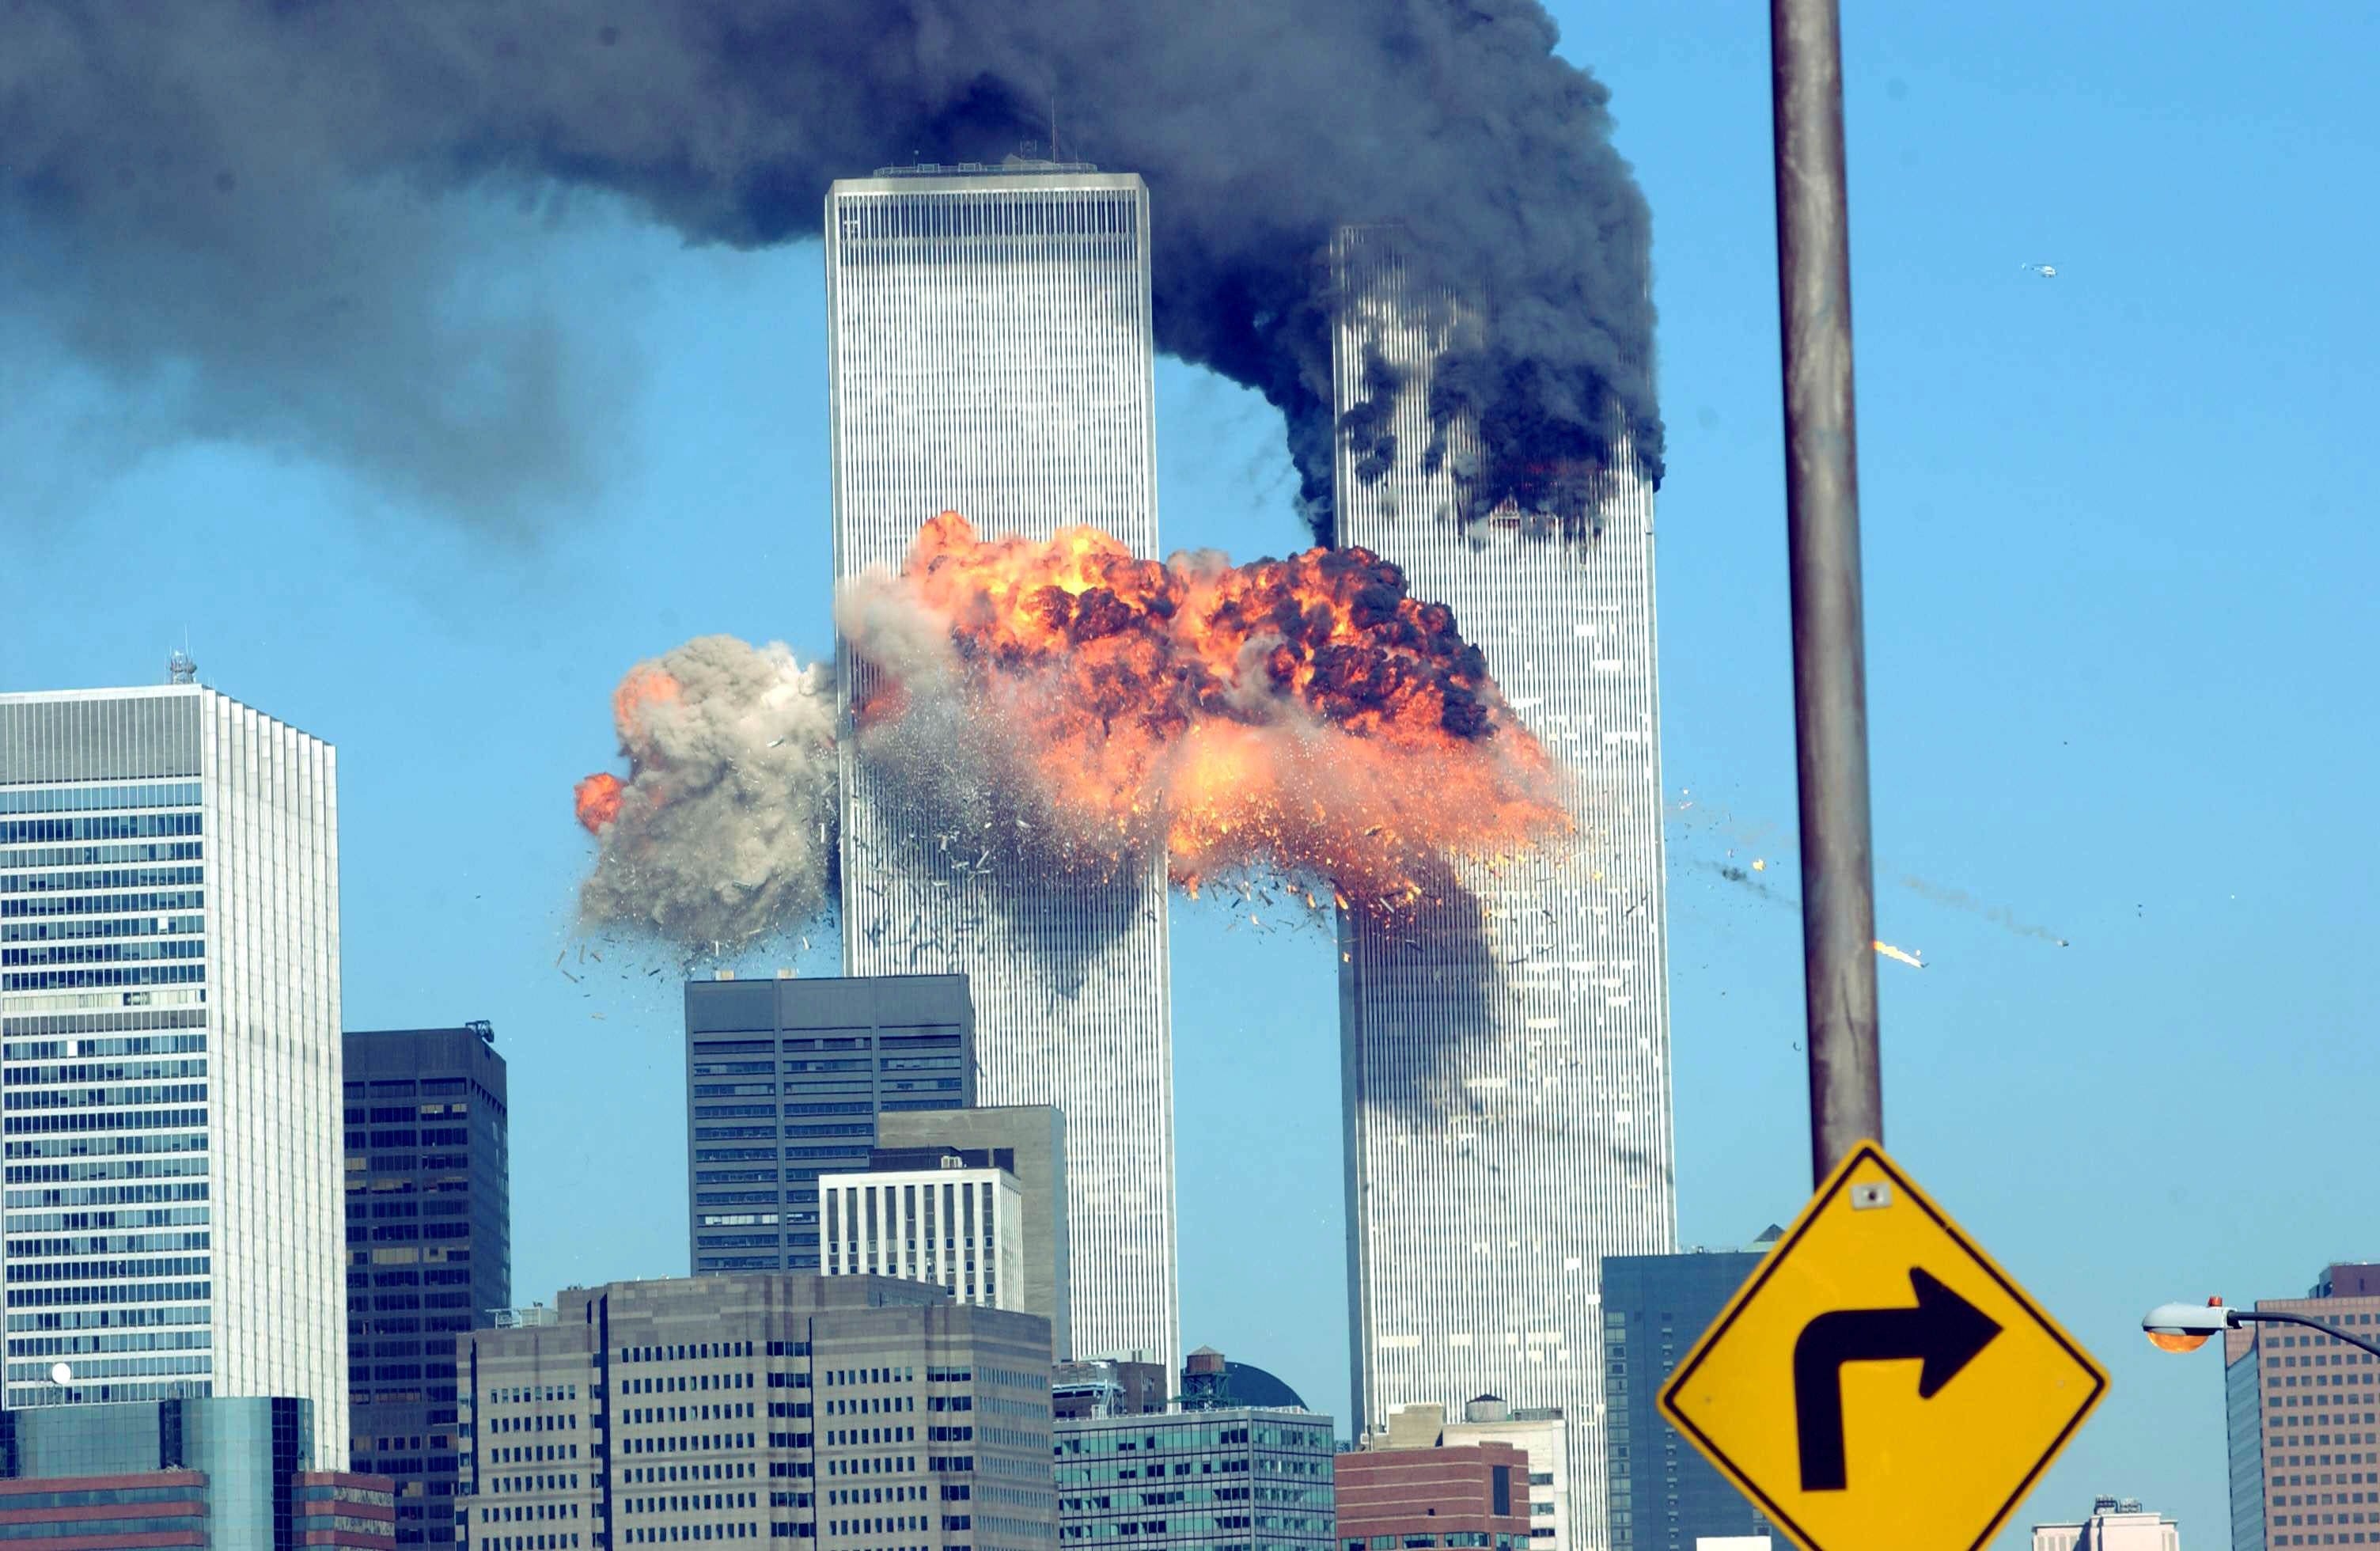 GettyImages 1161124 1 Saudi Government Linked To 9/11 Hijackers In Newly Released U.S. Report